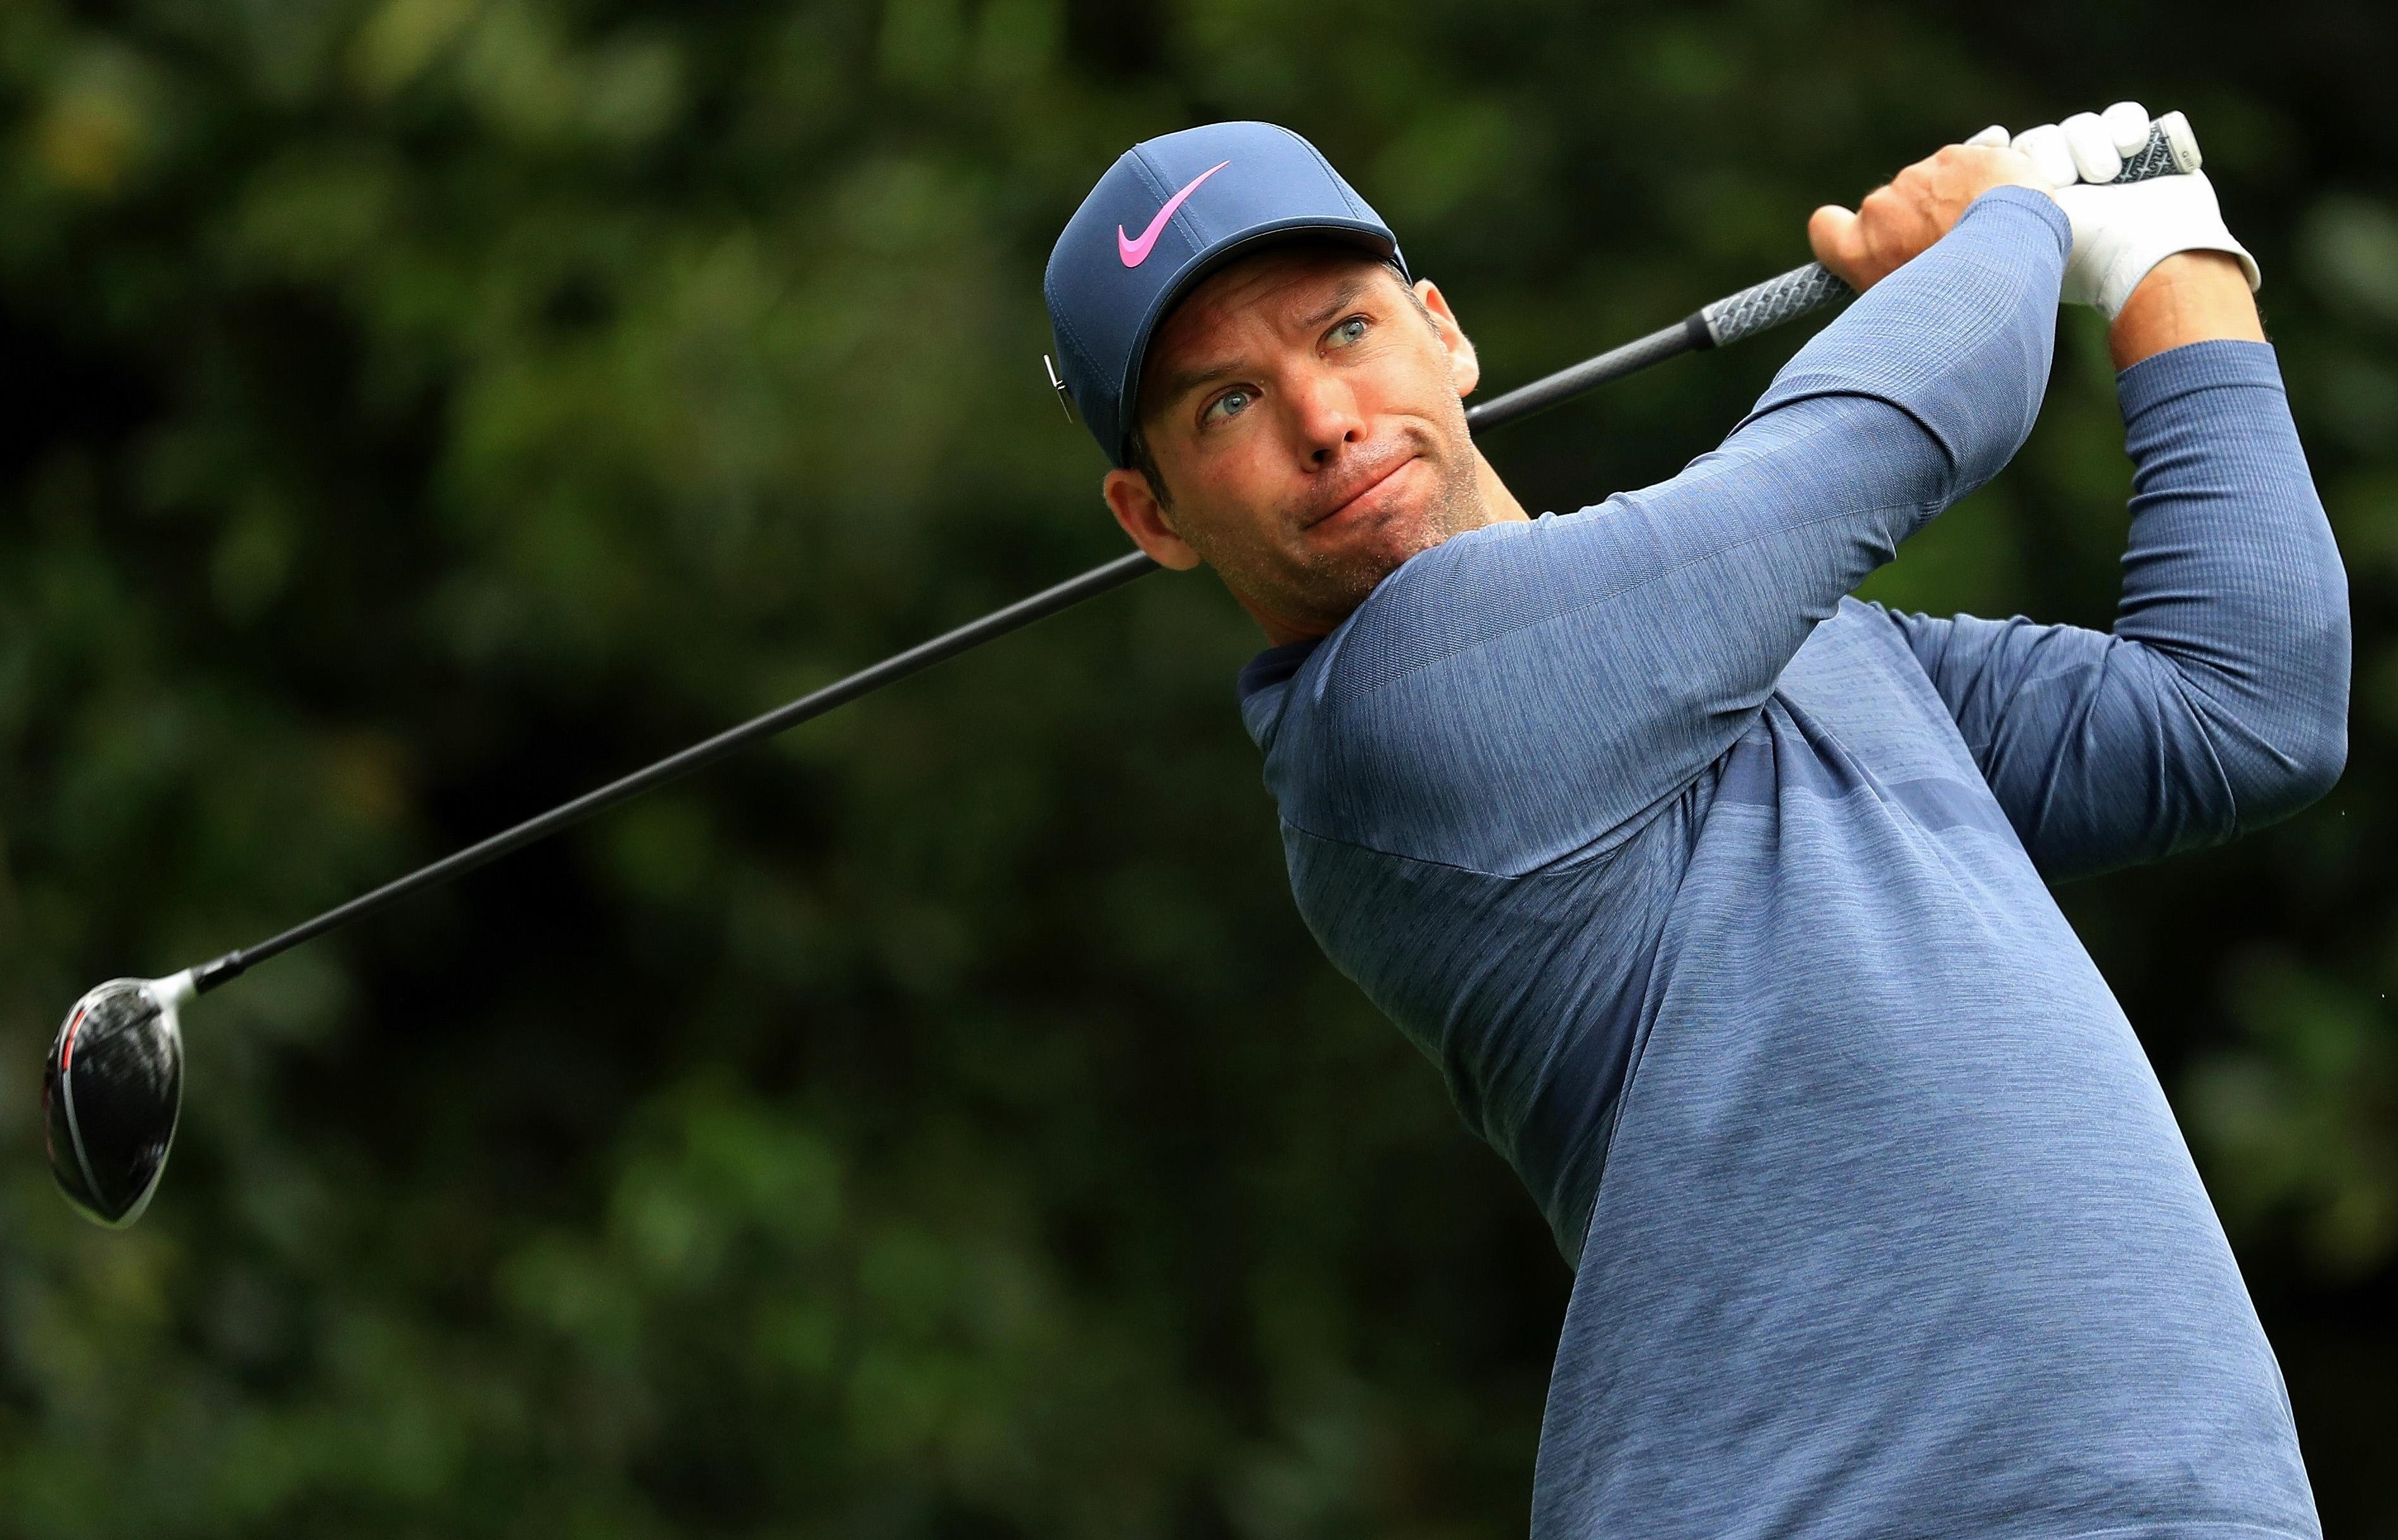 Paul Casey has produced a string of strong Masters finishes